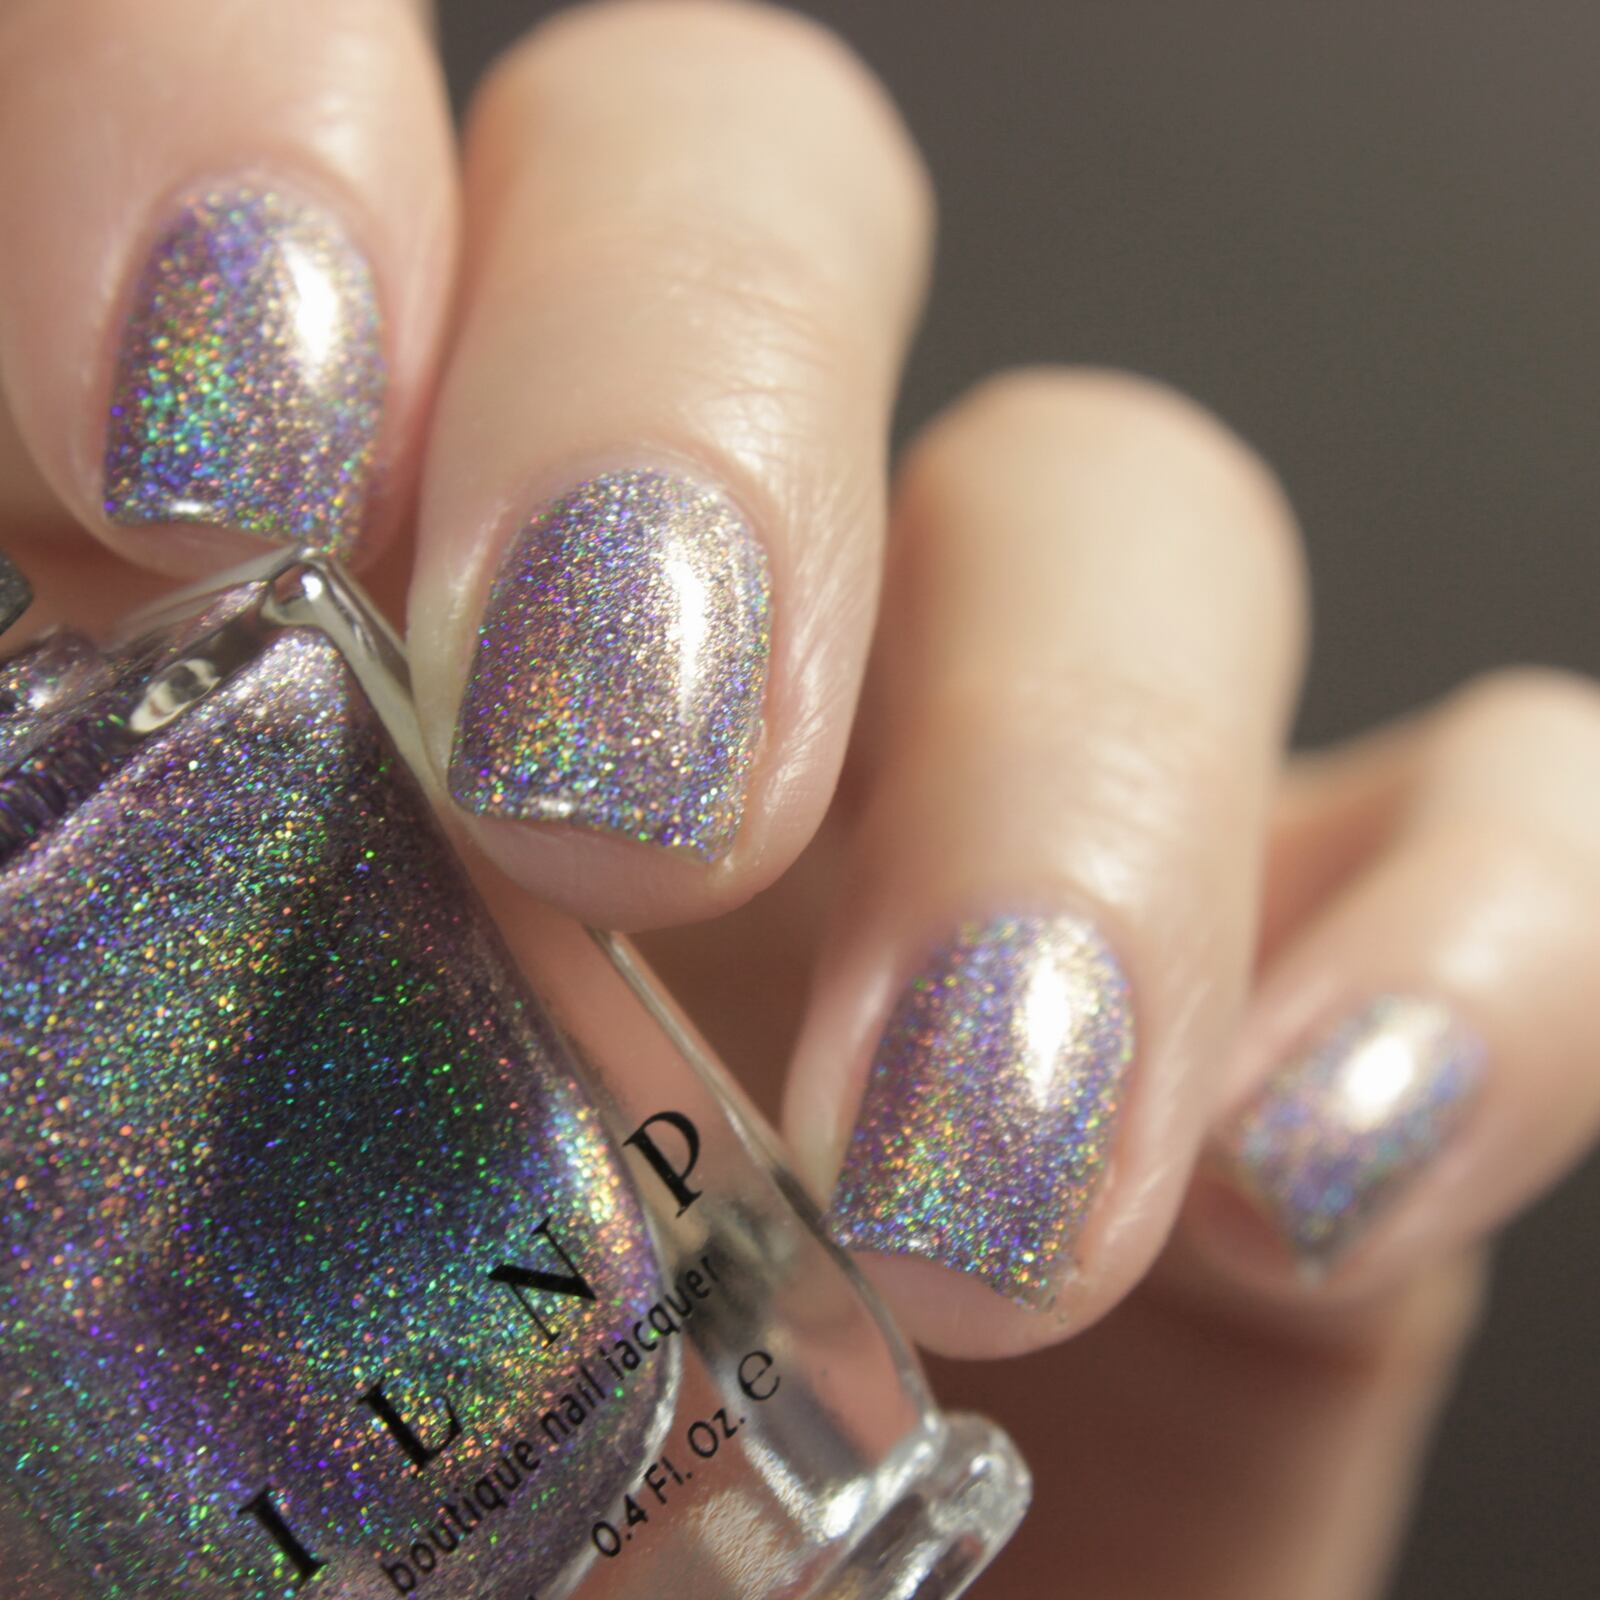 ILNP Home Sweet Home